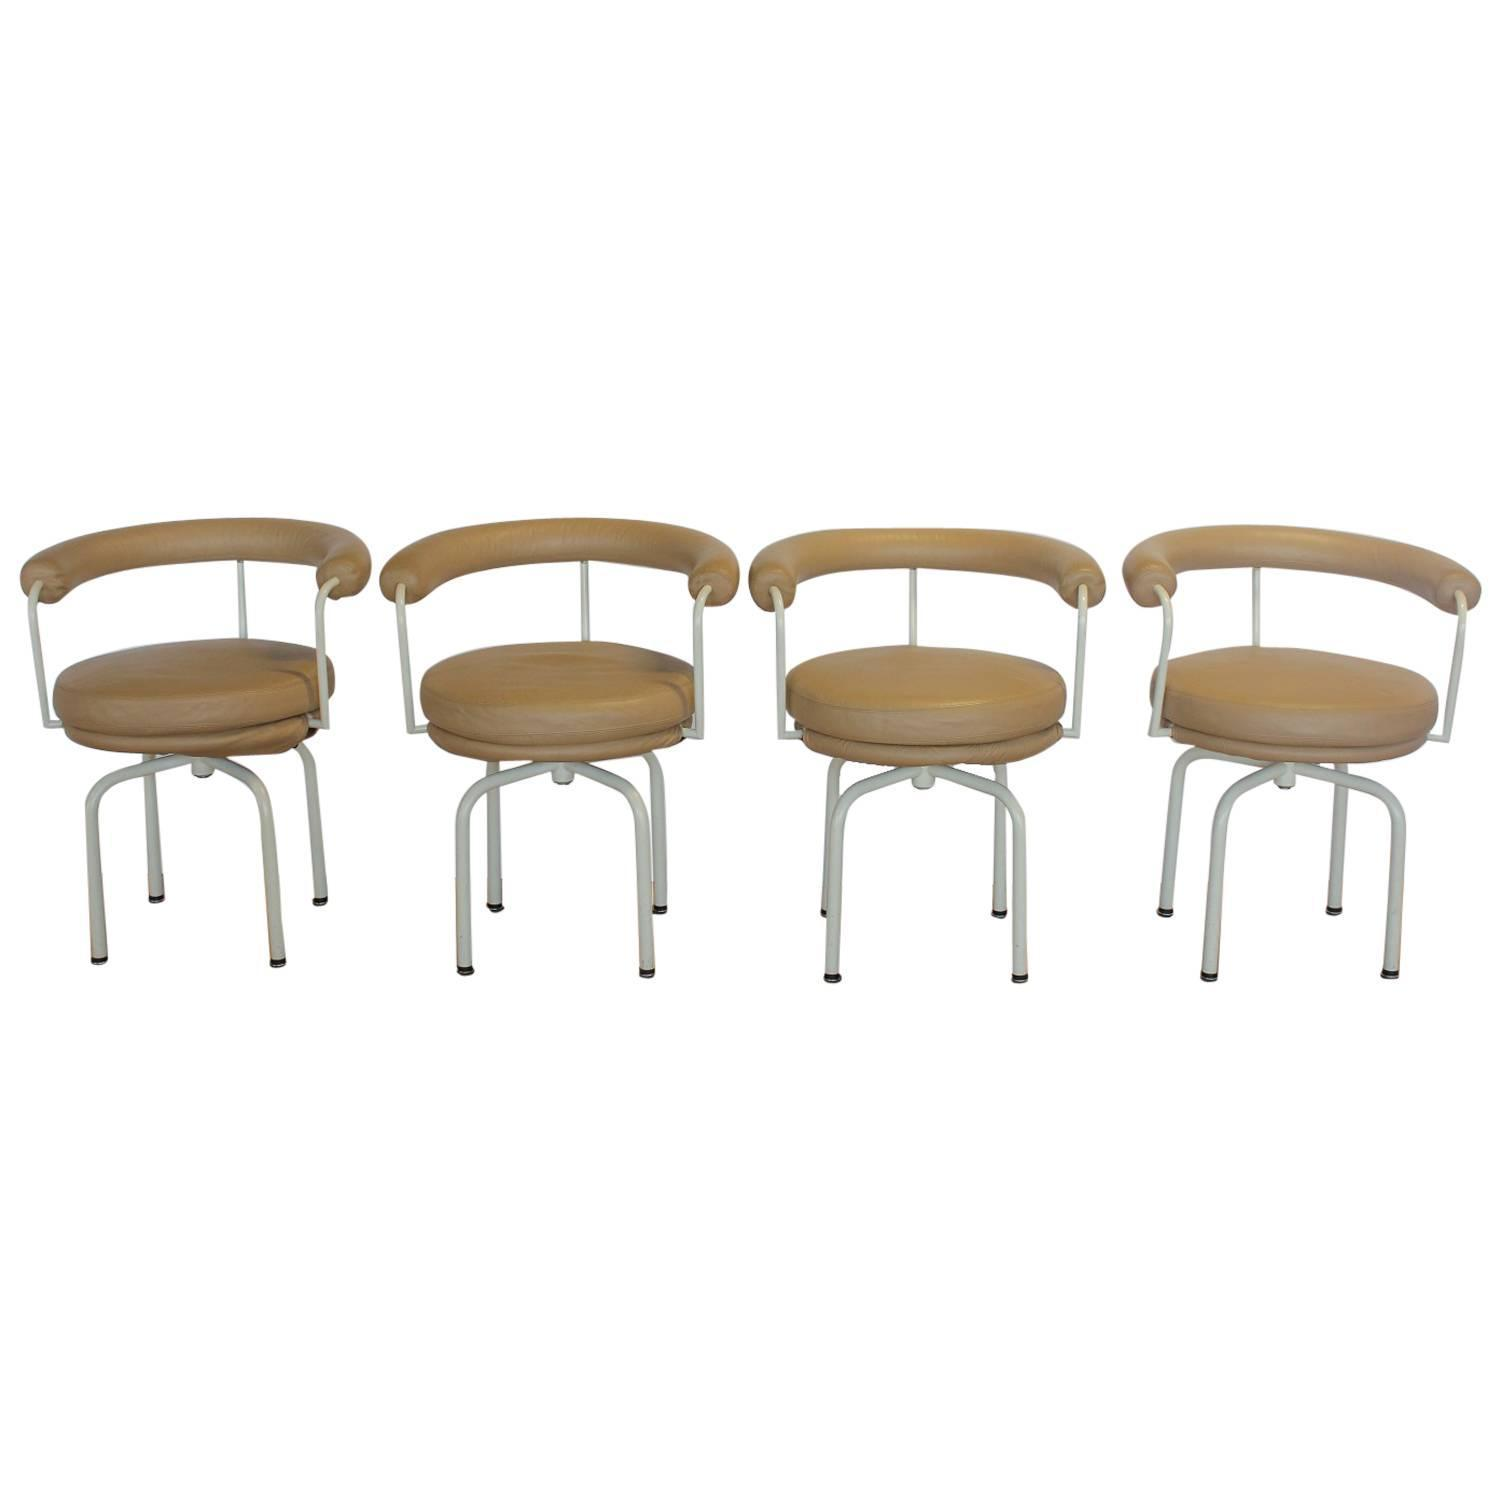 Stylish LC7 Chairs by Pierre Jeanneret Perriand and Le Corbusier